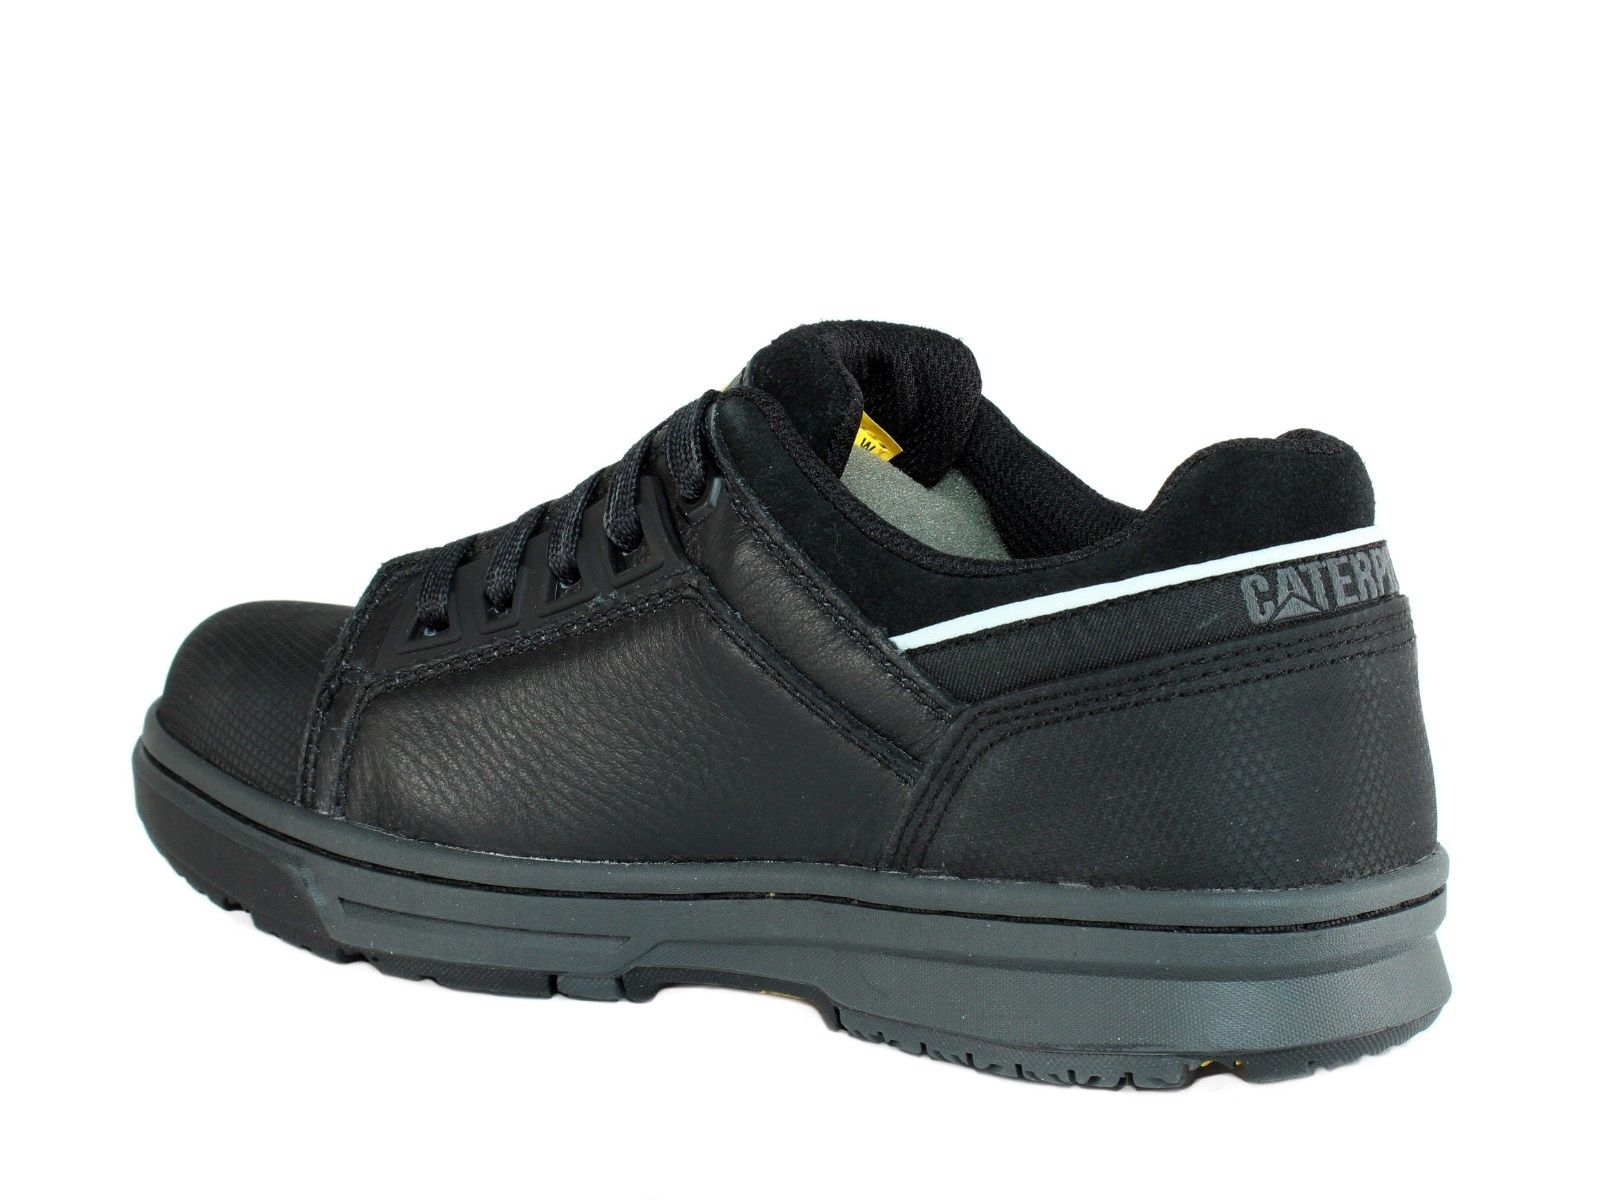 Caterpillar CONCAVE LO ST Steel Toe Women/'s Work Black Leather Shoe